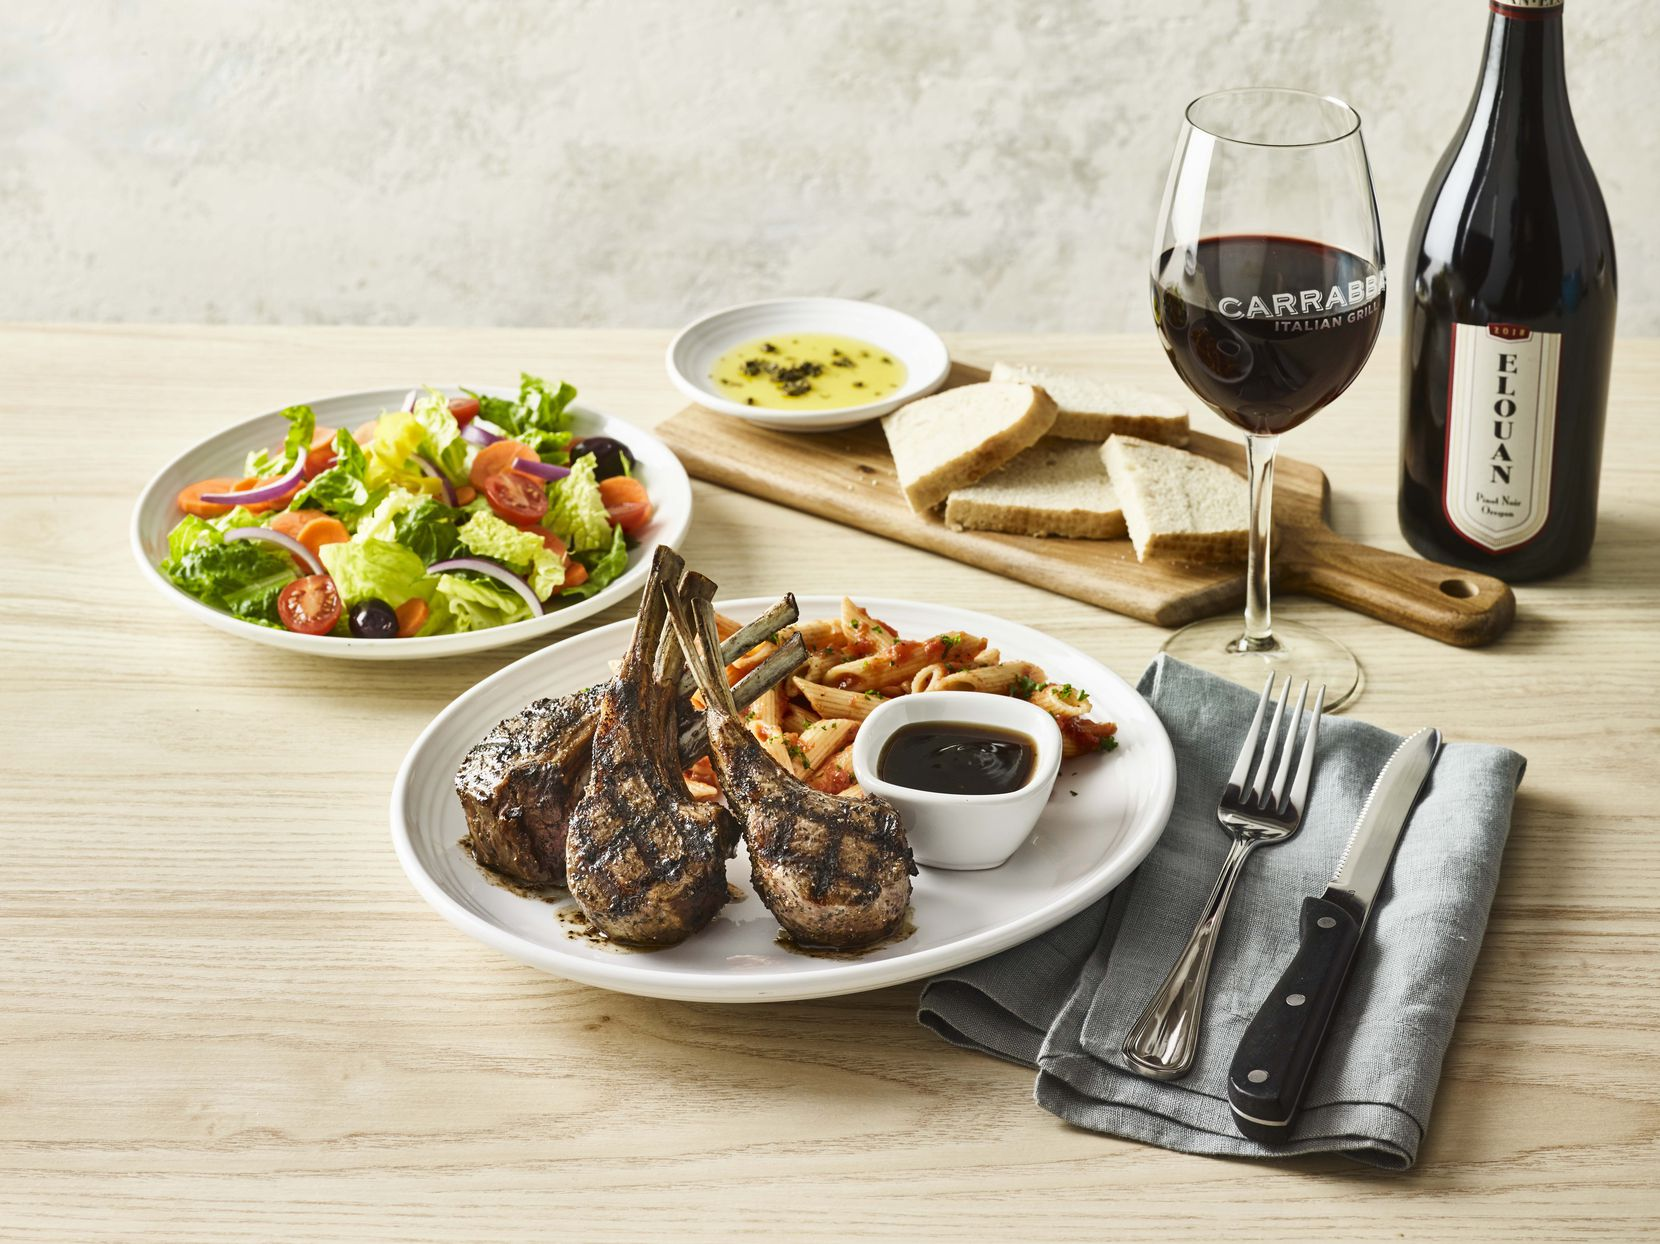 Carrabba's Italian Grille offer Tuscan-grilled lamb chops prepared with a signature grill baste, olive oil and herbs and a mint bourbon demi-glace as part of its Easter offerings this year.